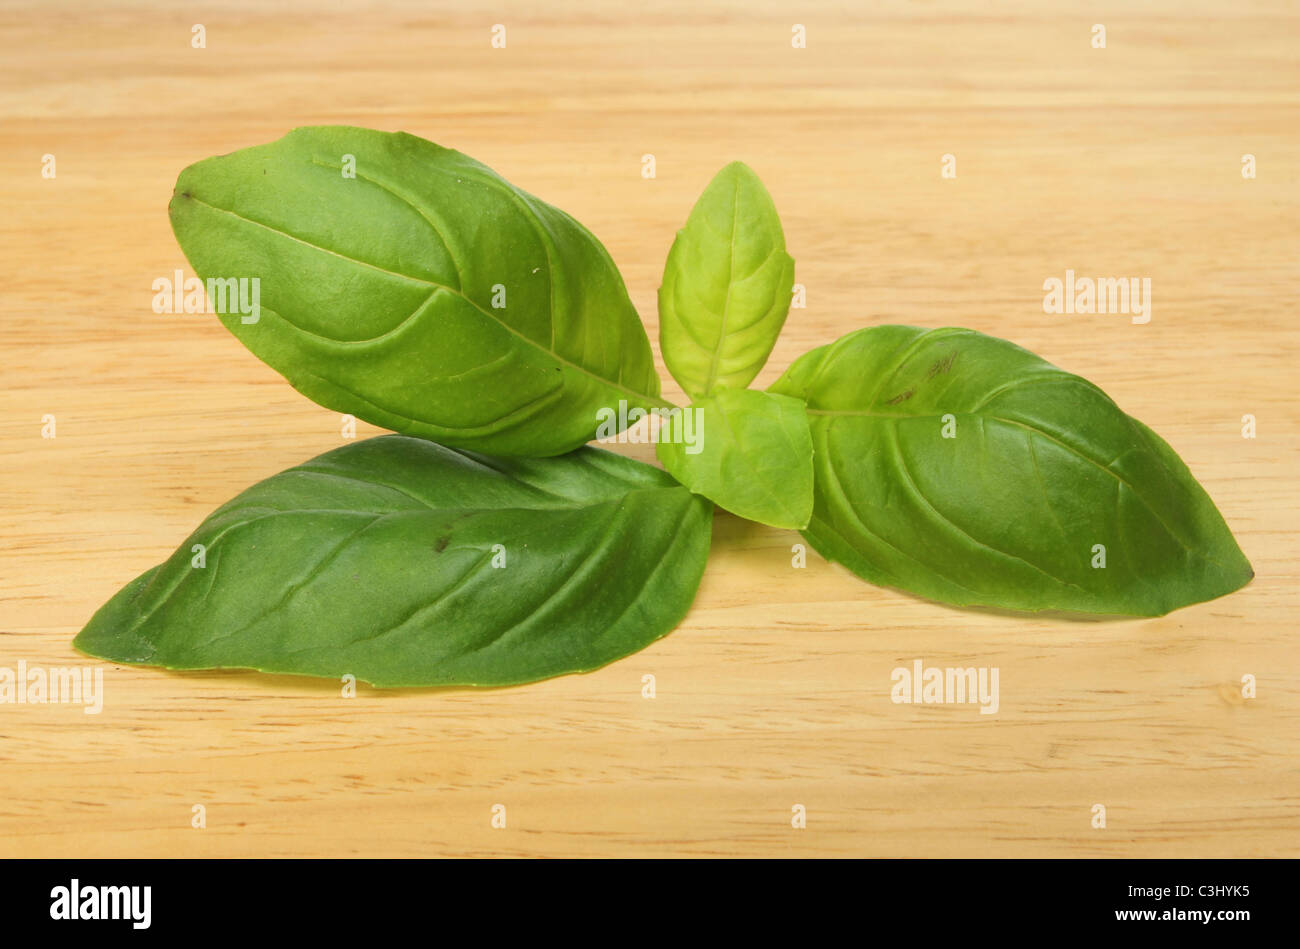 A sprig of fresh basil herb leaves on a wooden board - Stock Image